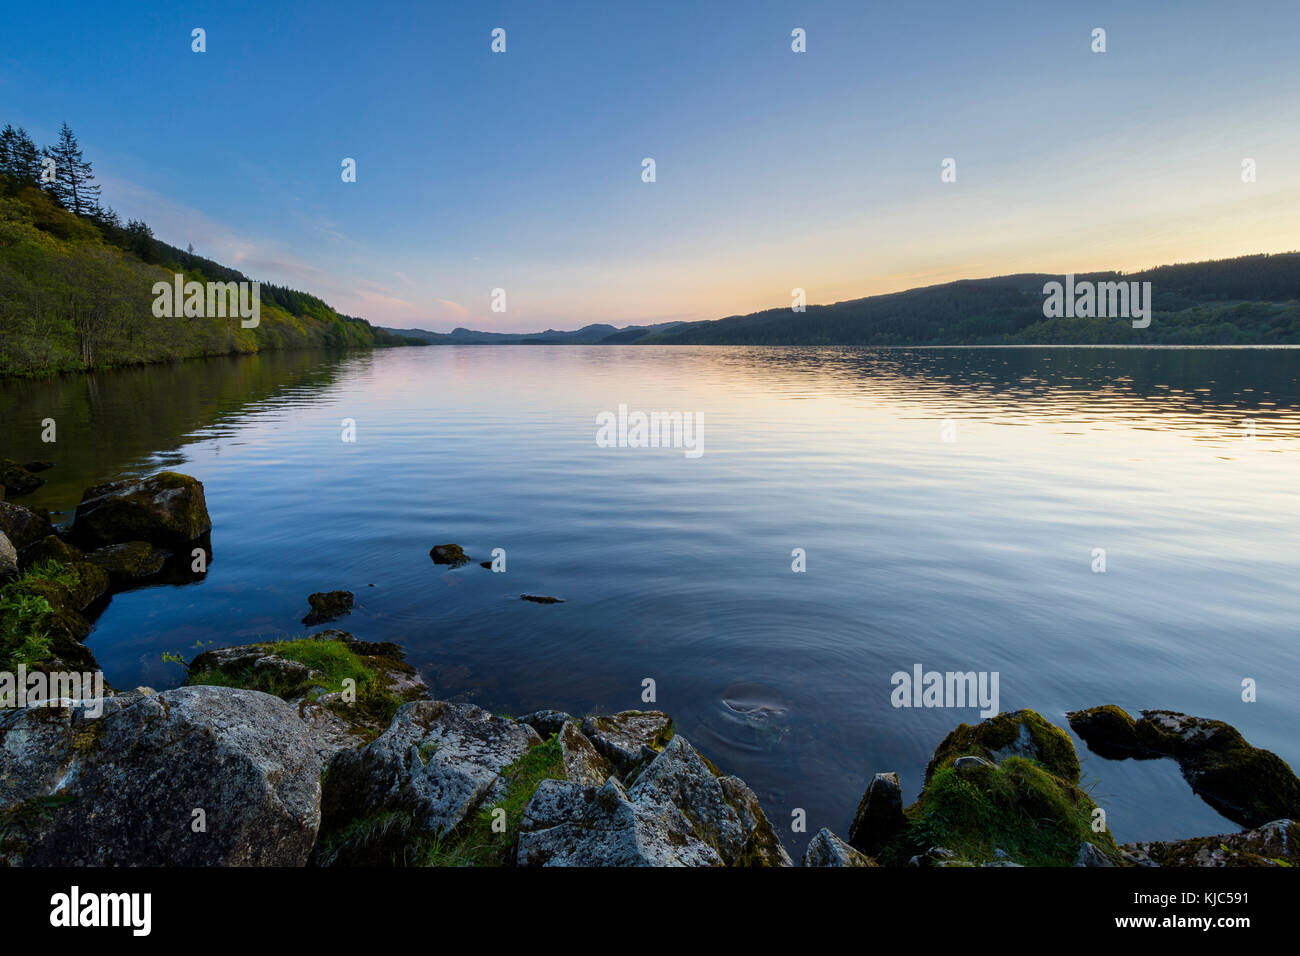 Scenic view of Loch Awe in Argyll and Bute in the Scottish Highlands at dusk in Scotland - Stock Image